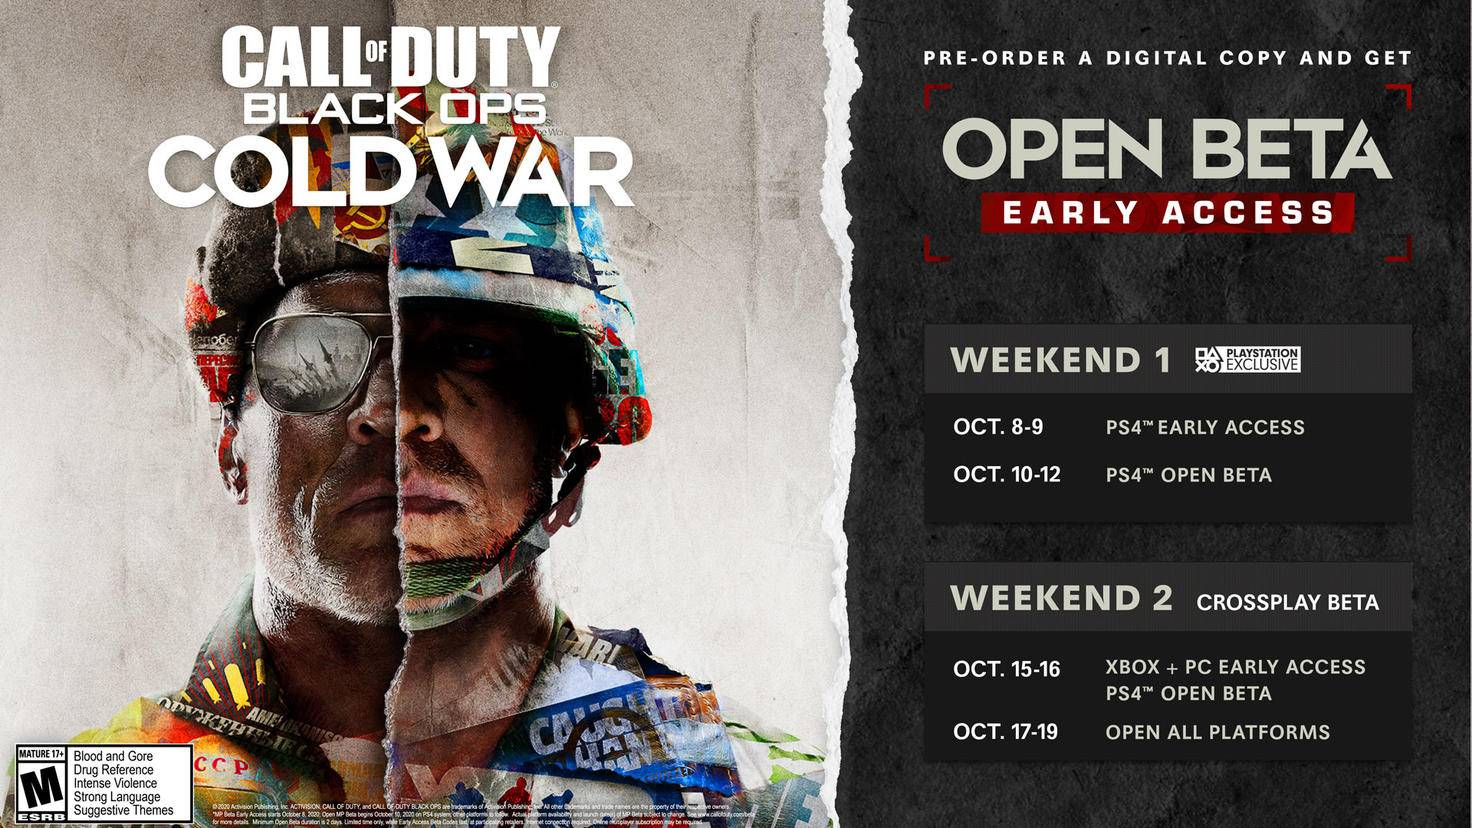 call-of-duty-black-ops-cold-war-beta